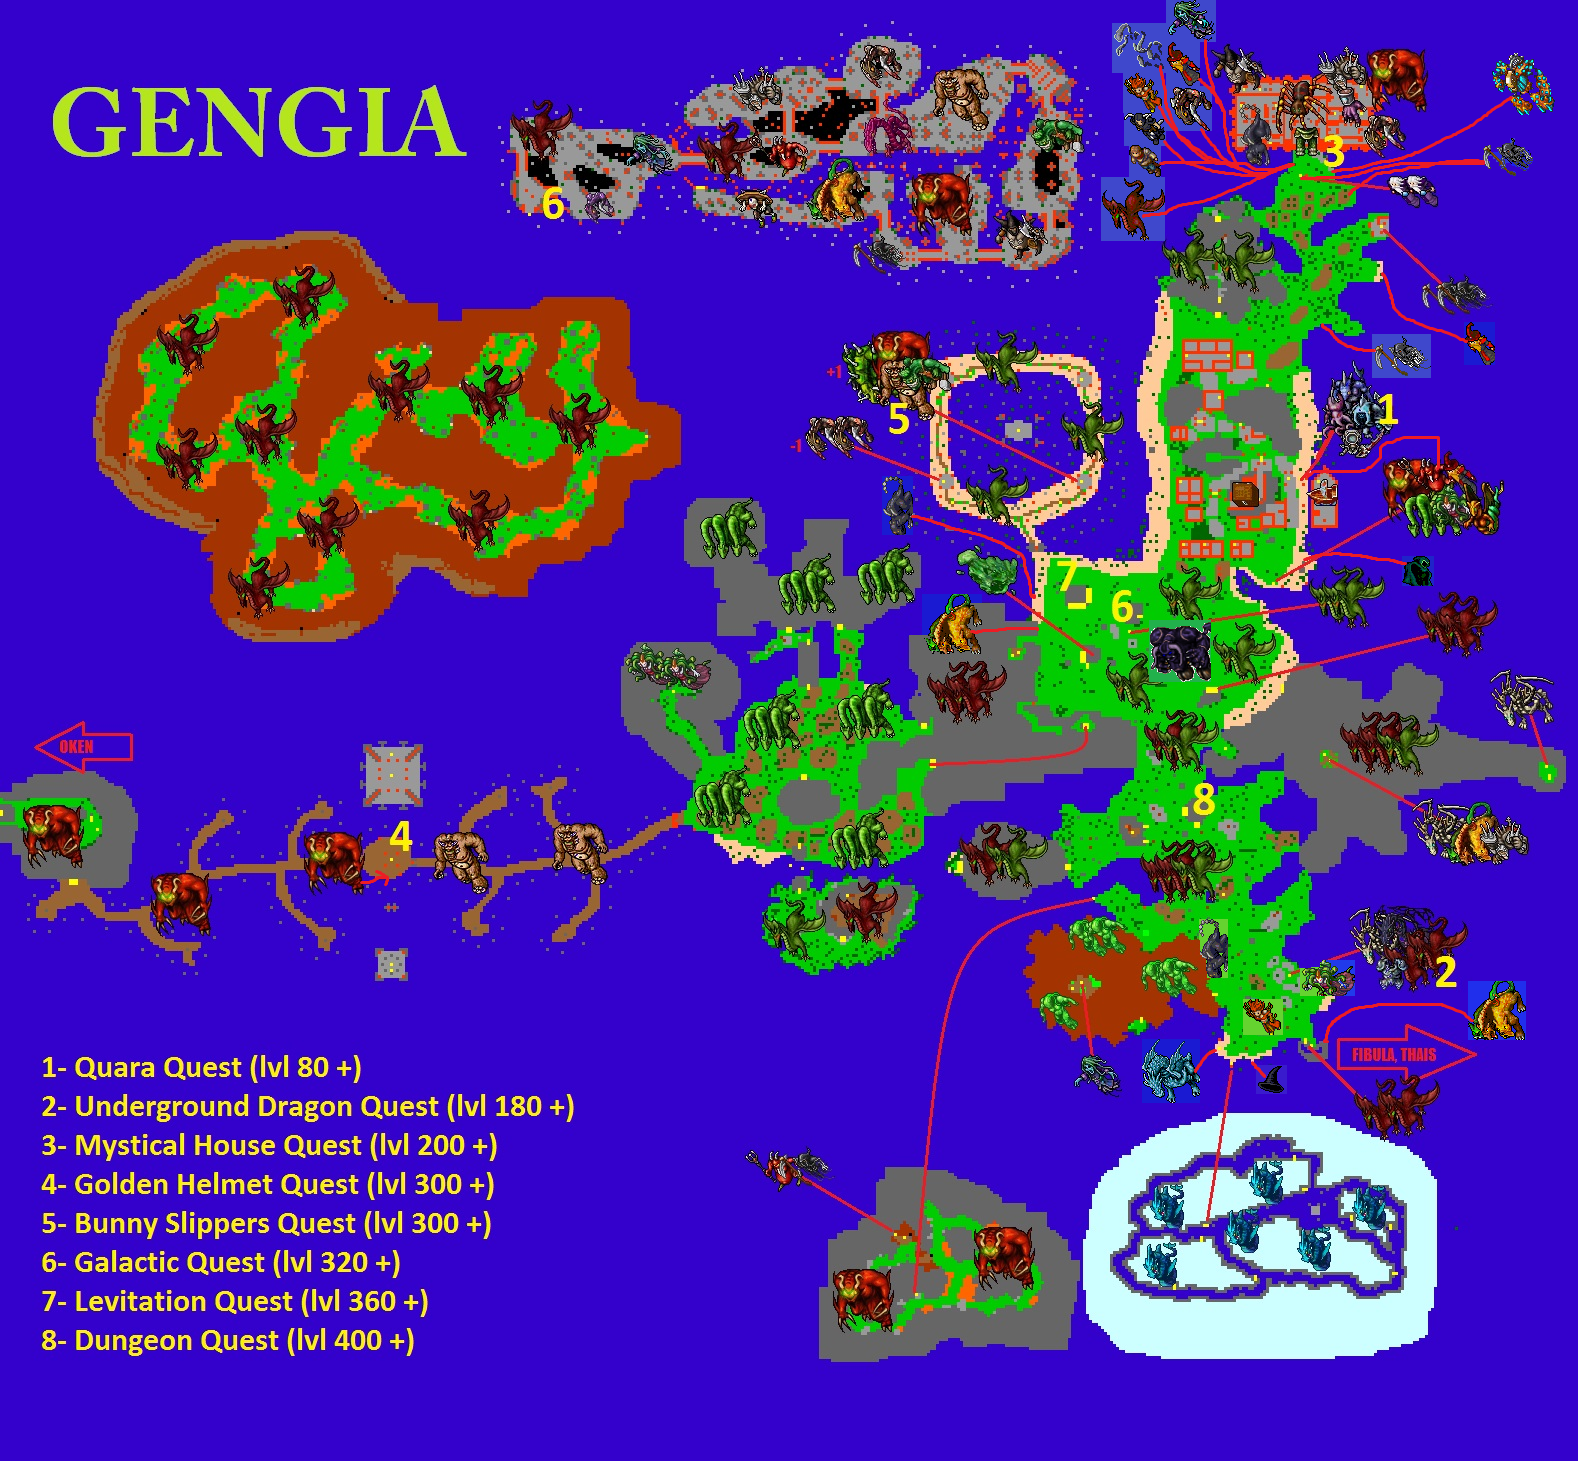 http://dinera.net/images/maps/gengia.png